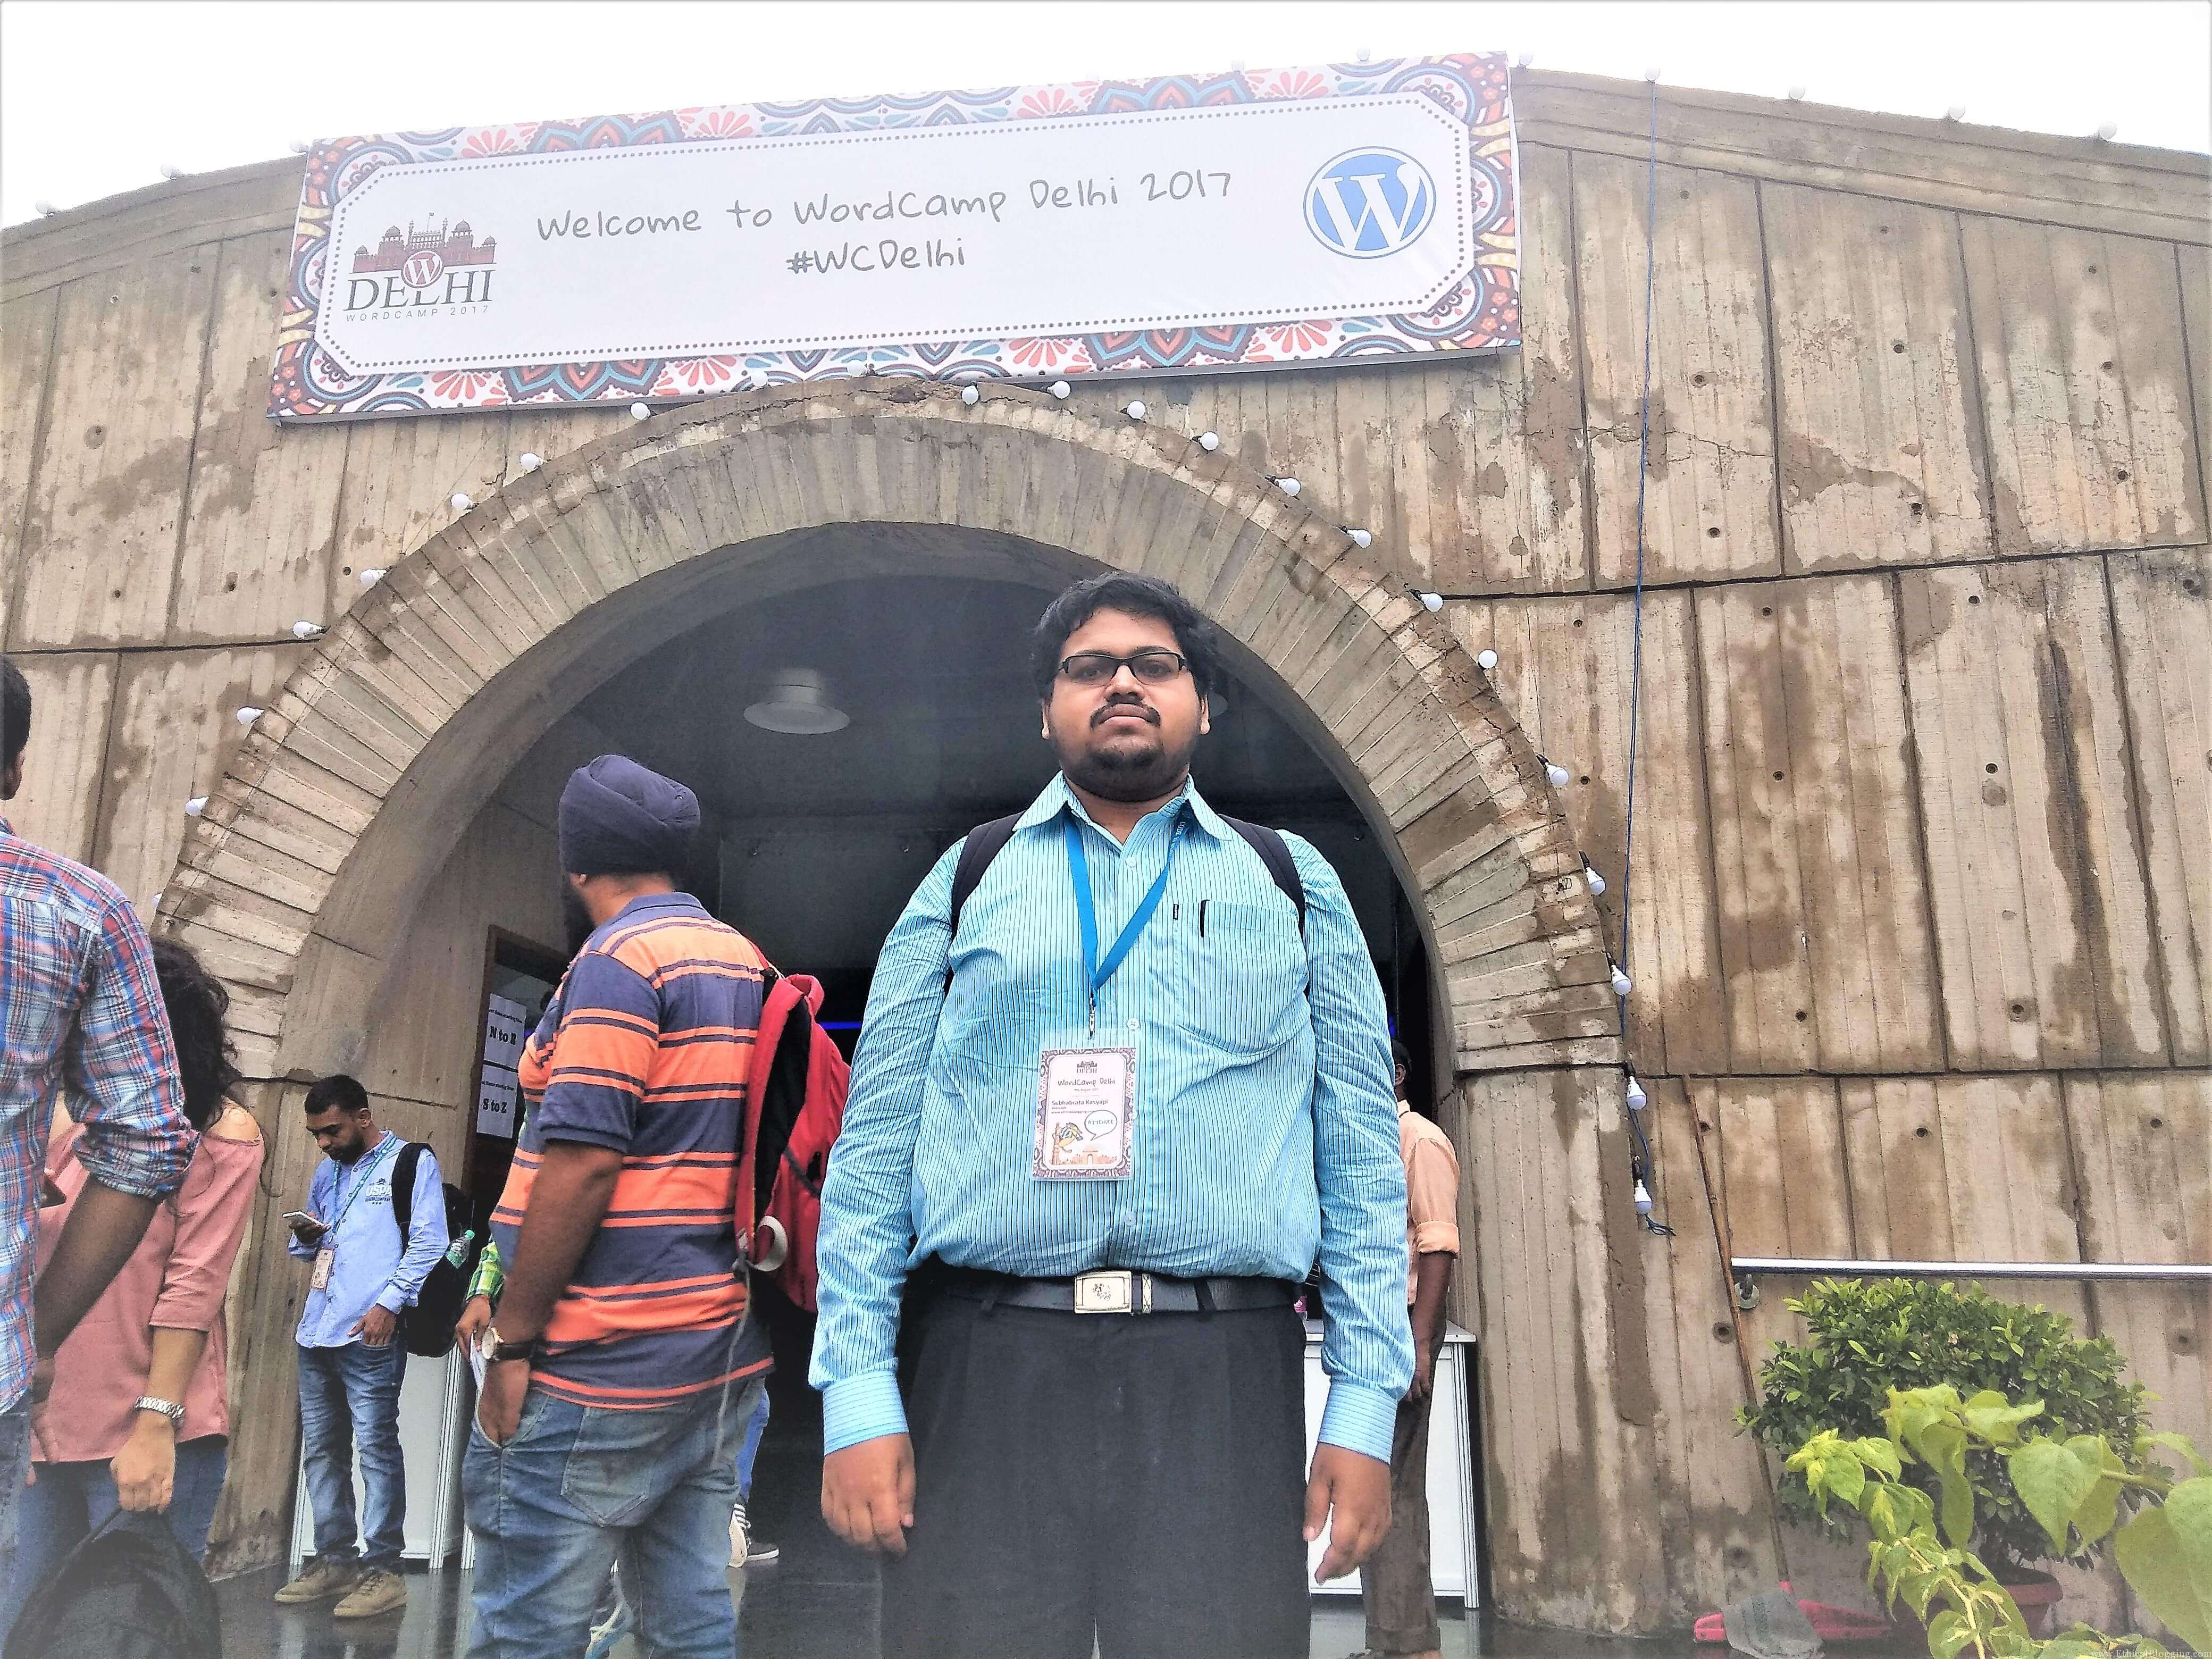 Subhabrata Kasyapi in Front of WordCamp Delhi 2017 Gate